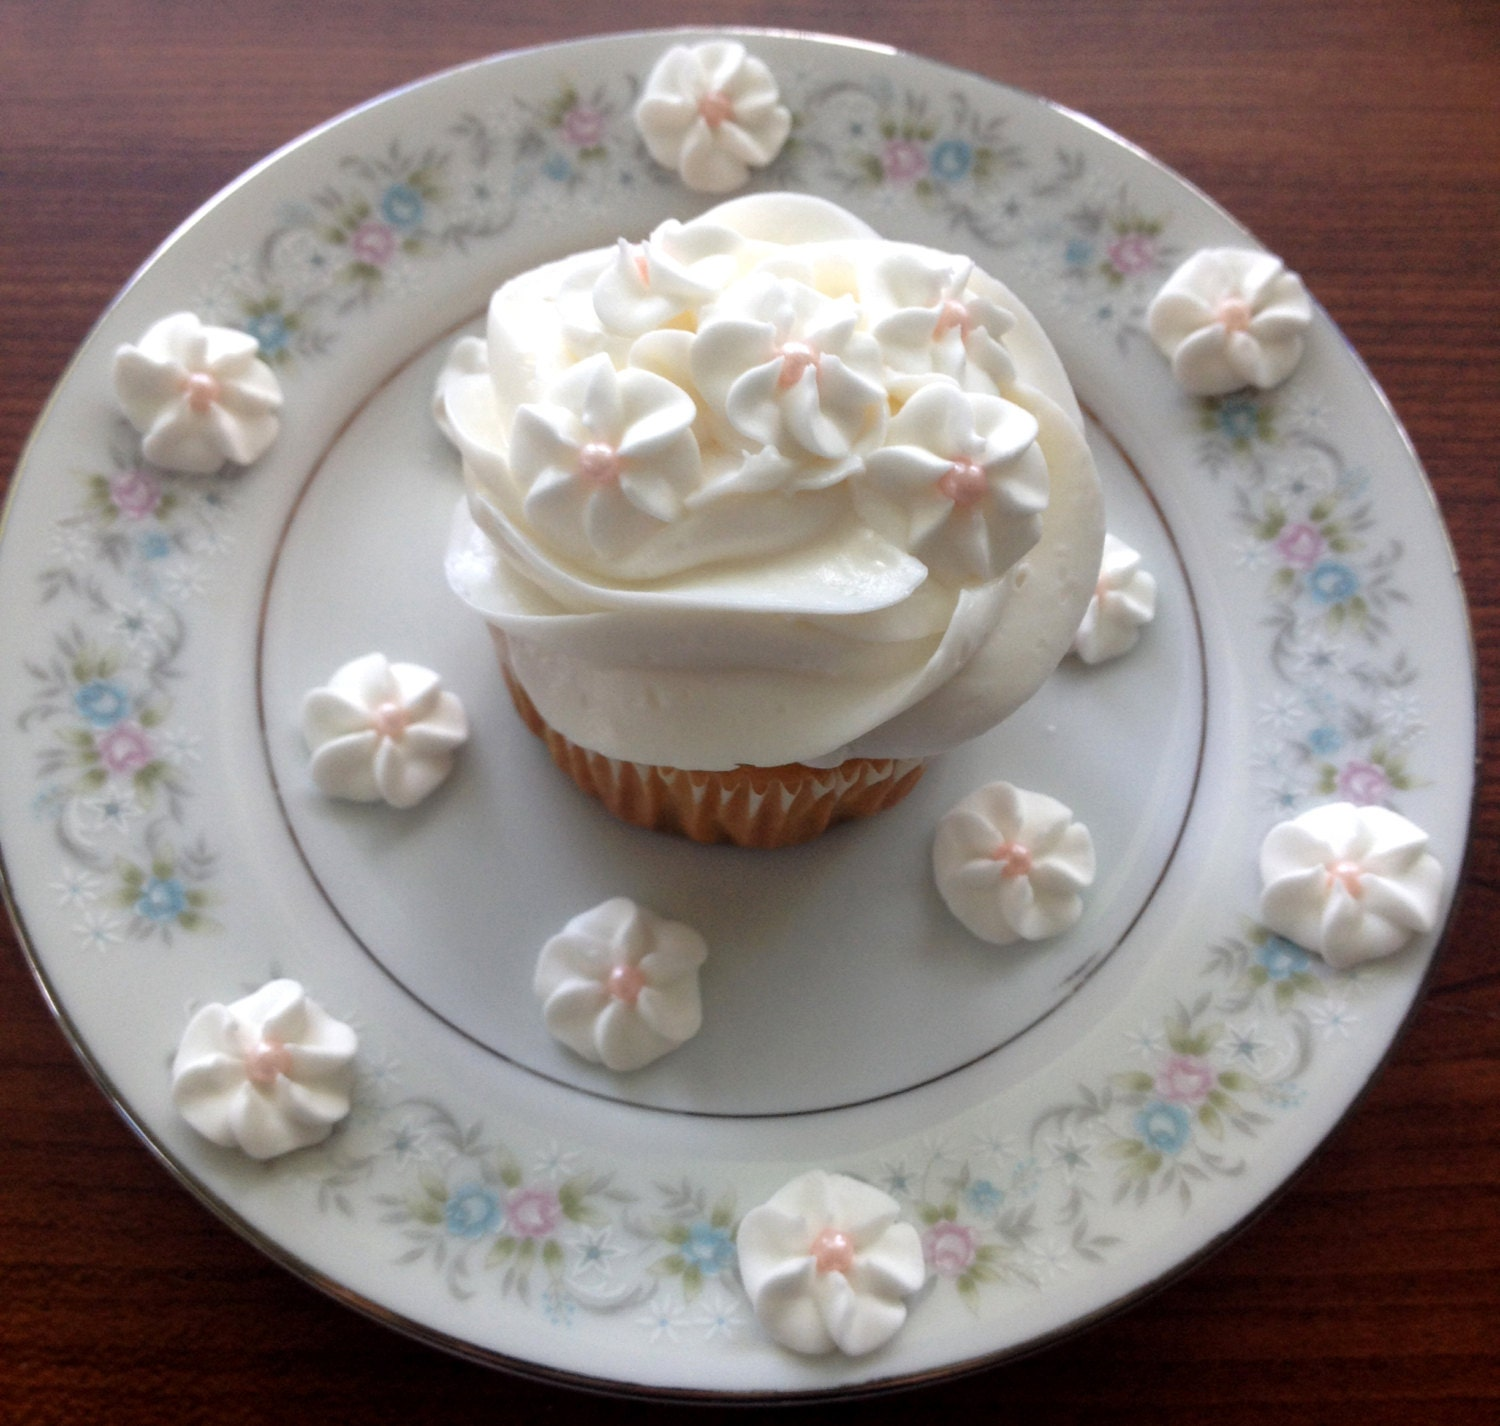 White Royal Icing Flowers With Pink Pearl Centers 100 Etsy